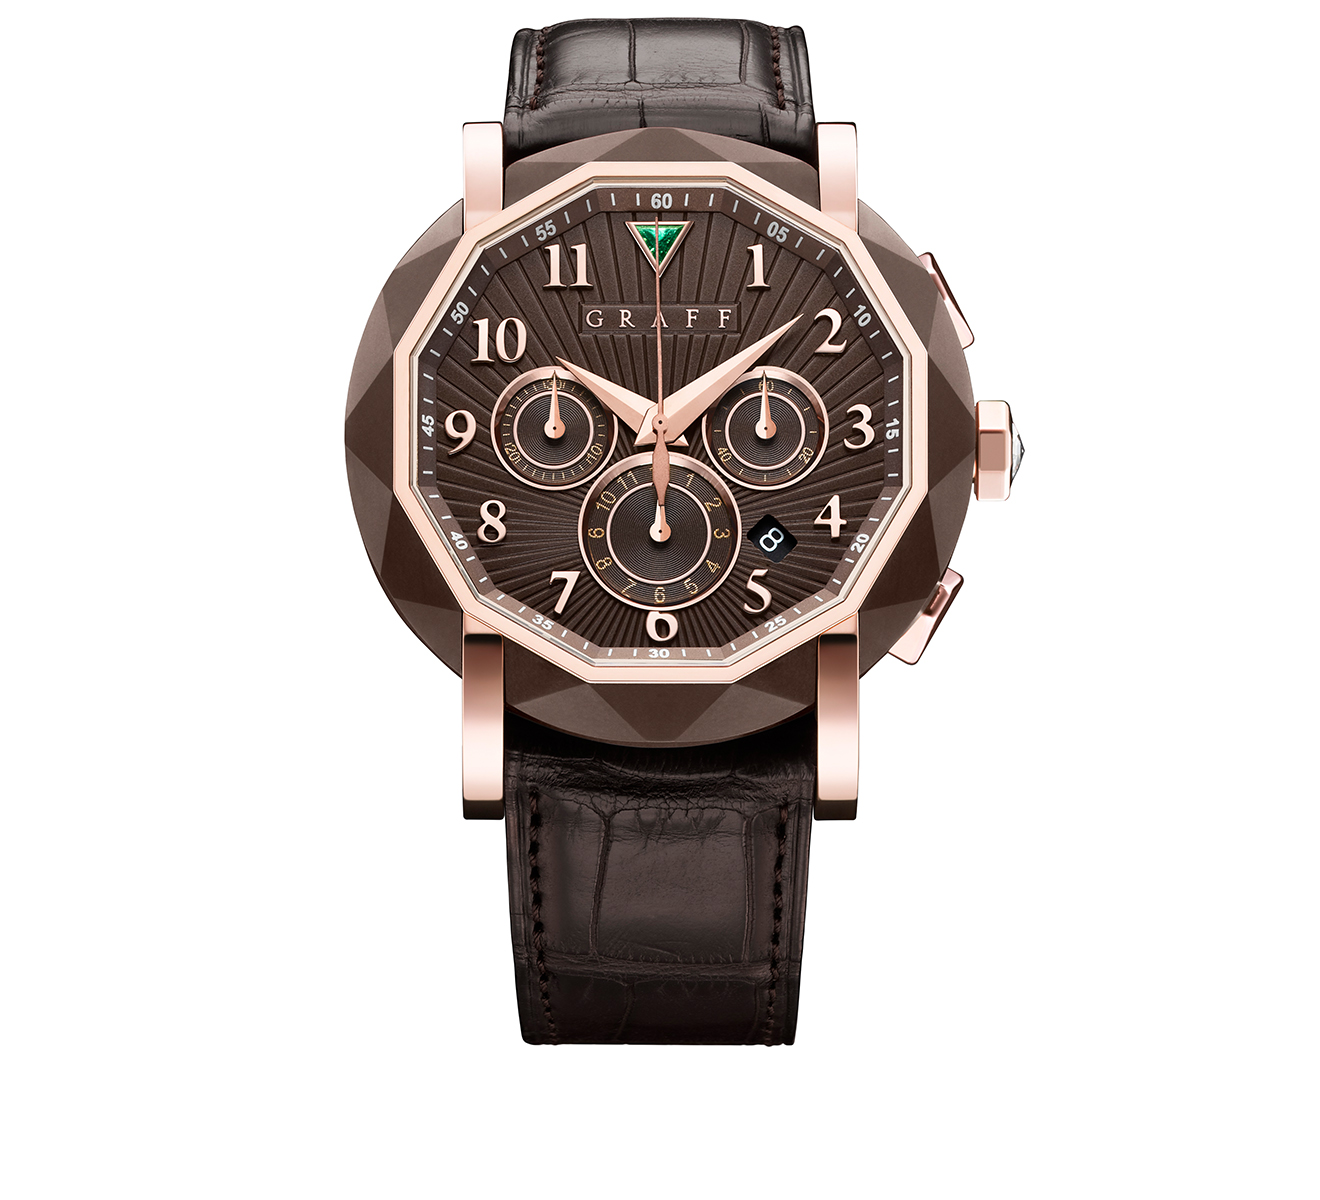 Часы Steel Rose Gold Chronograph GRAFF ChronoGraff CG45DLCCPGC - фото 1 – Mercury